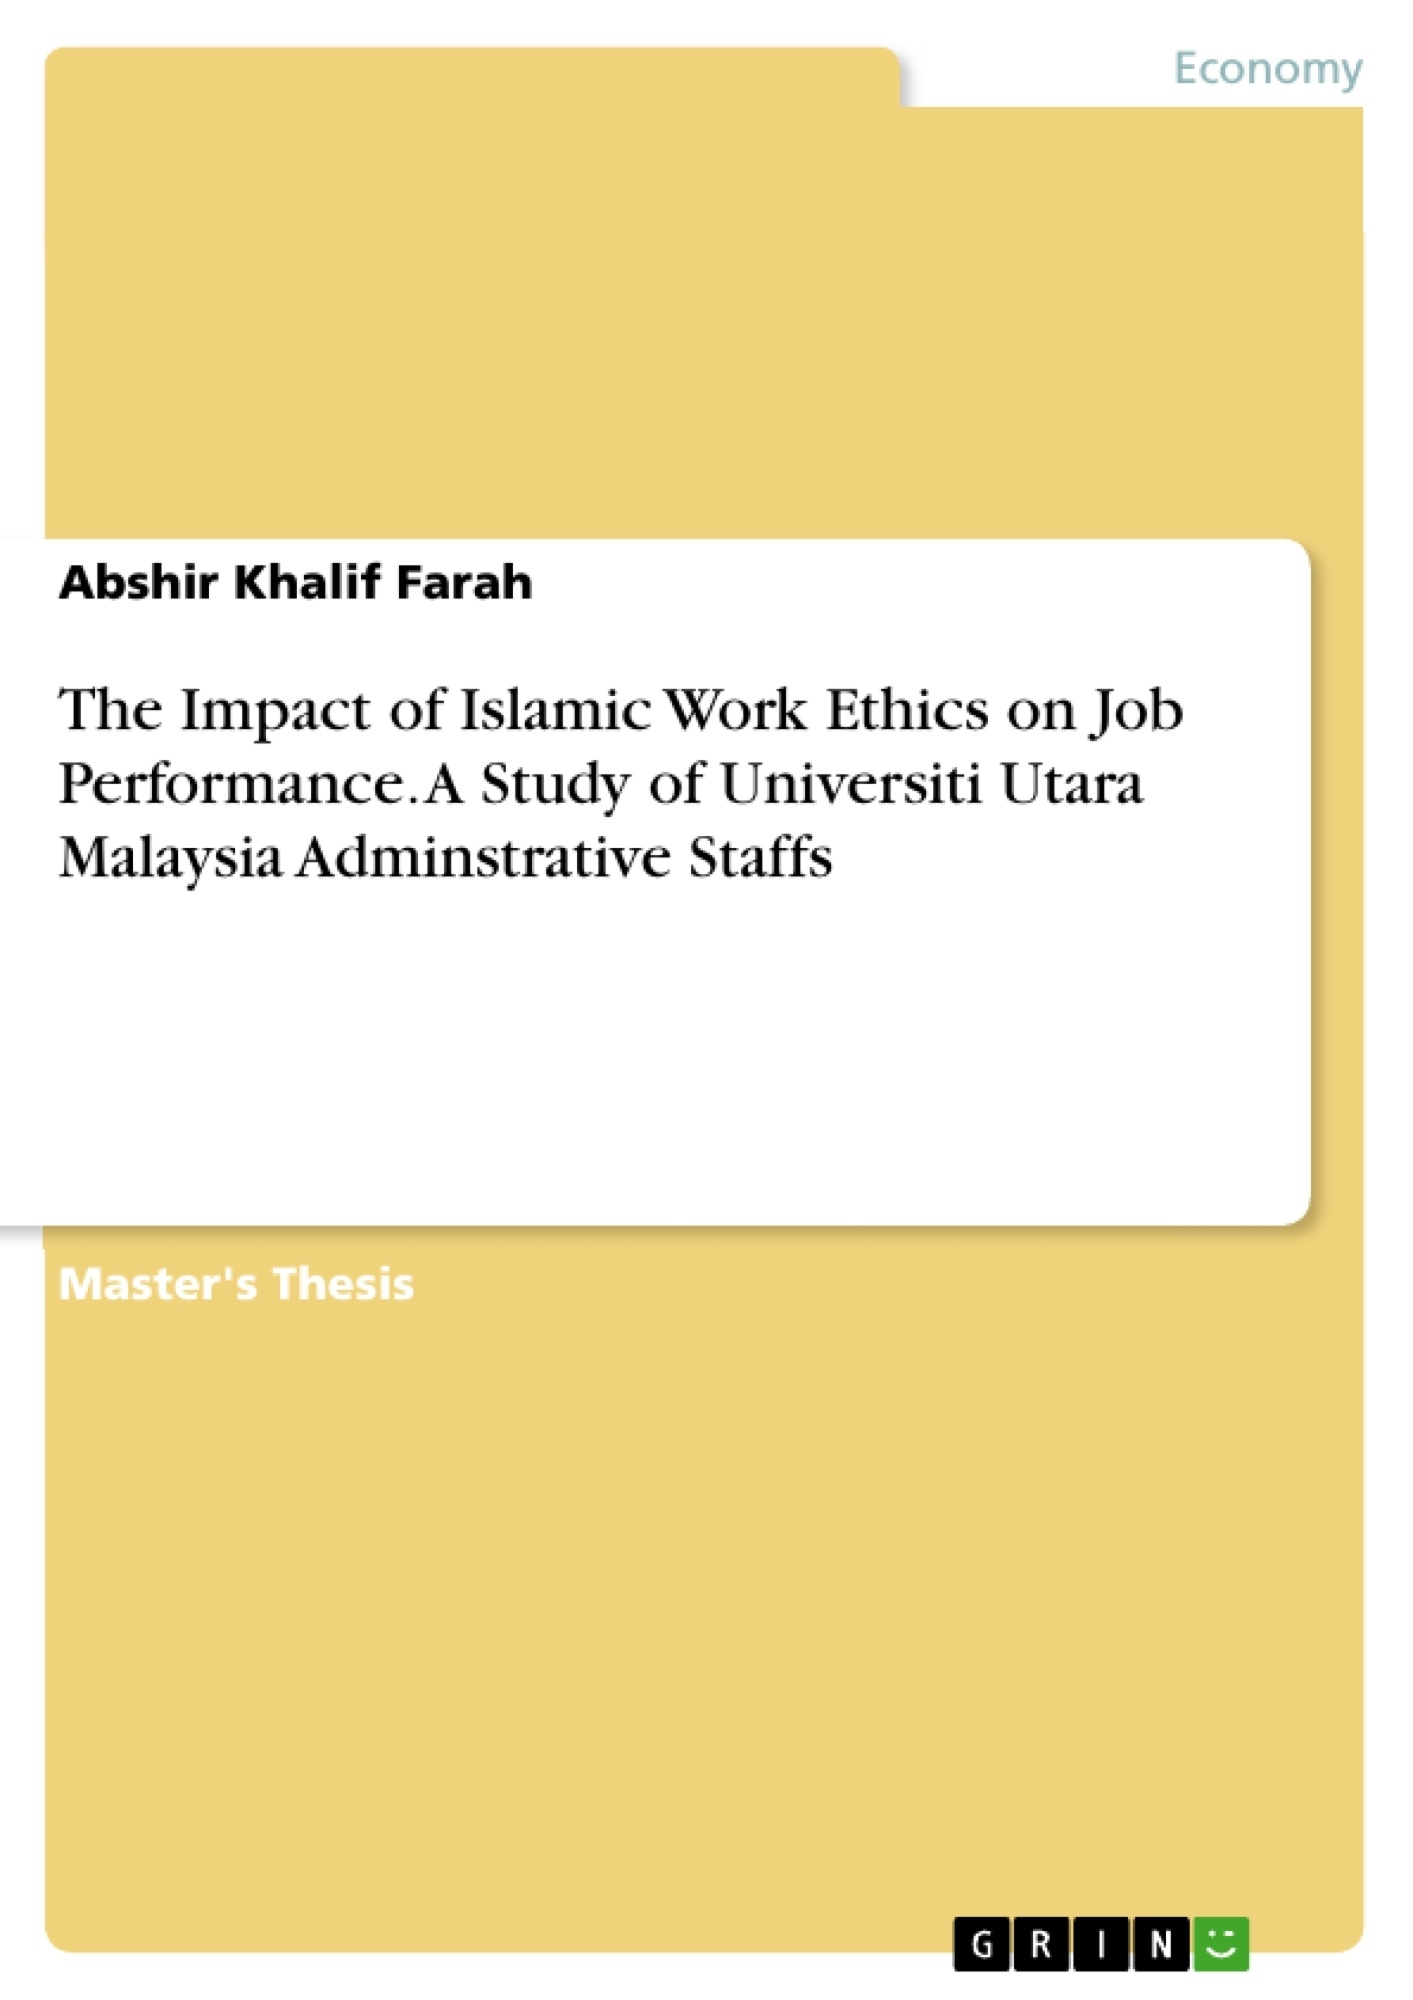 Title: The Impact of Islamic Work Ethics on Job Performance. A Study of Universiti Utara Malaysia Adminstrative Staffs